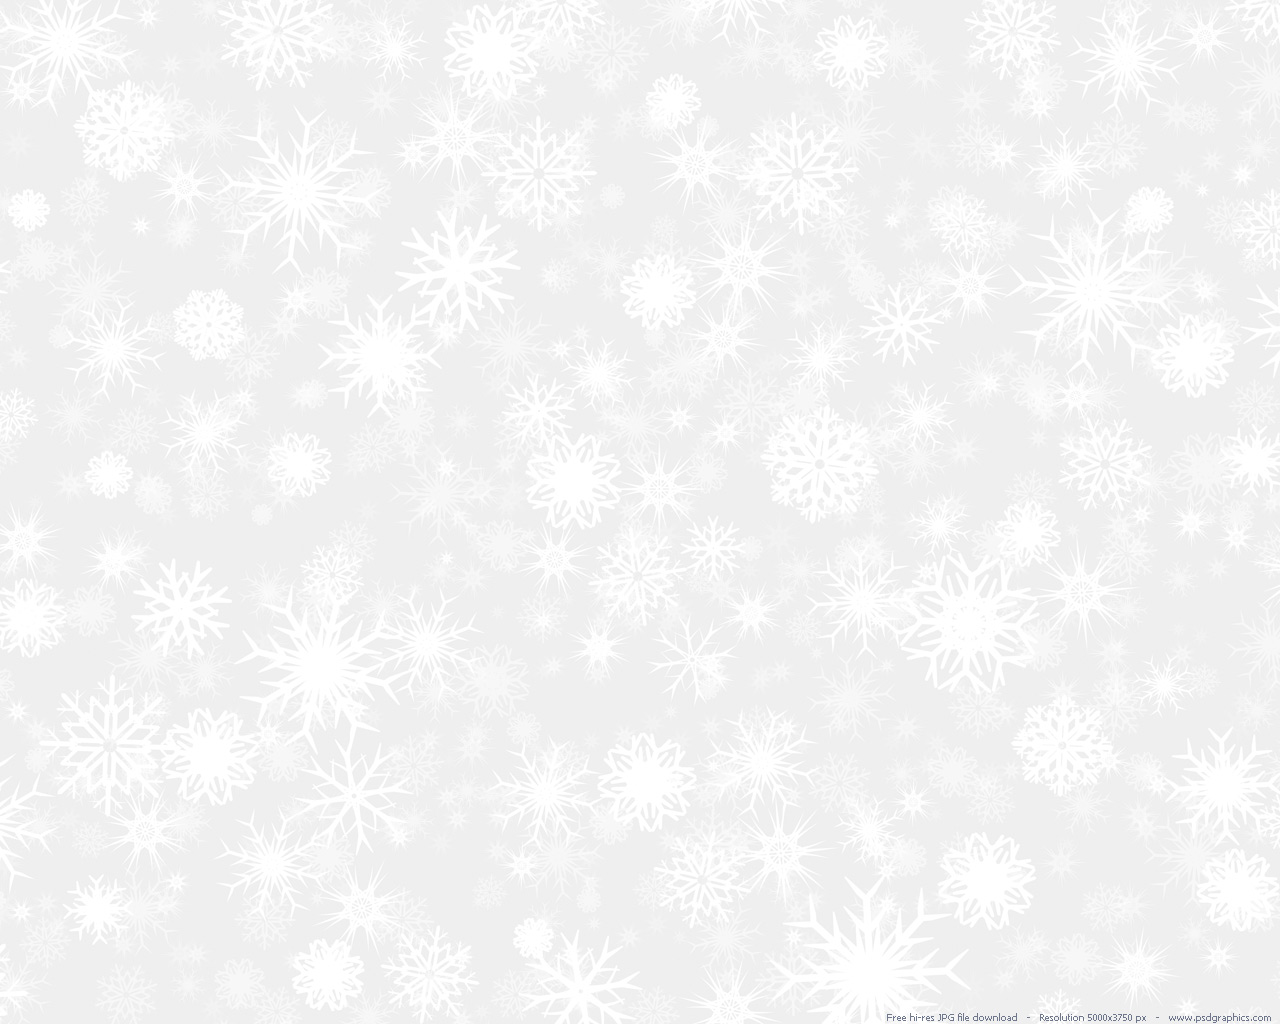 Large preview 1280x1024px White snow 1280x1024